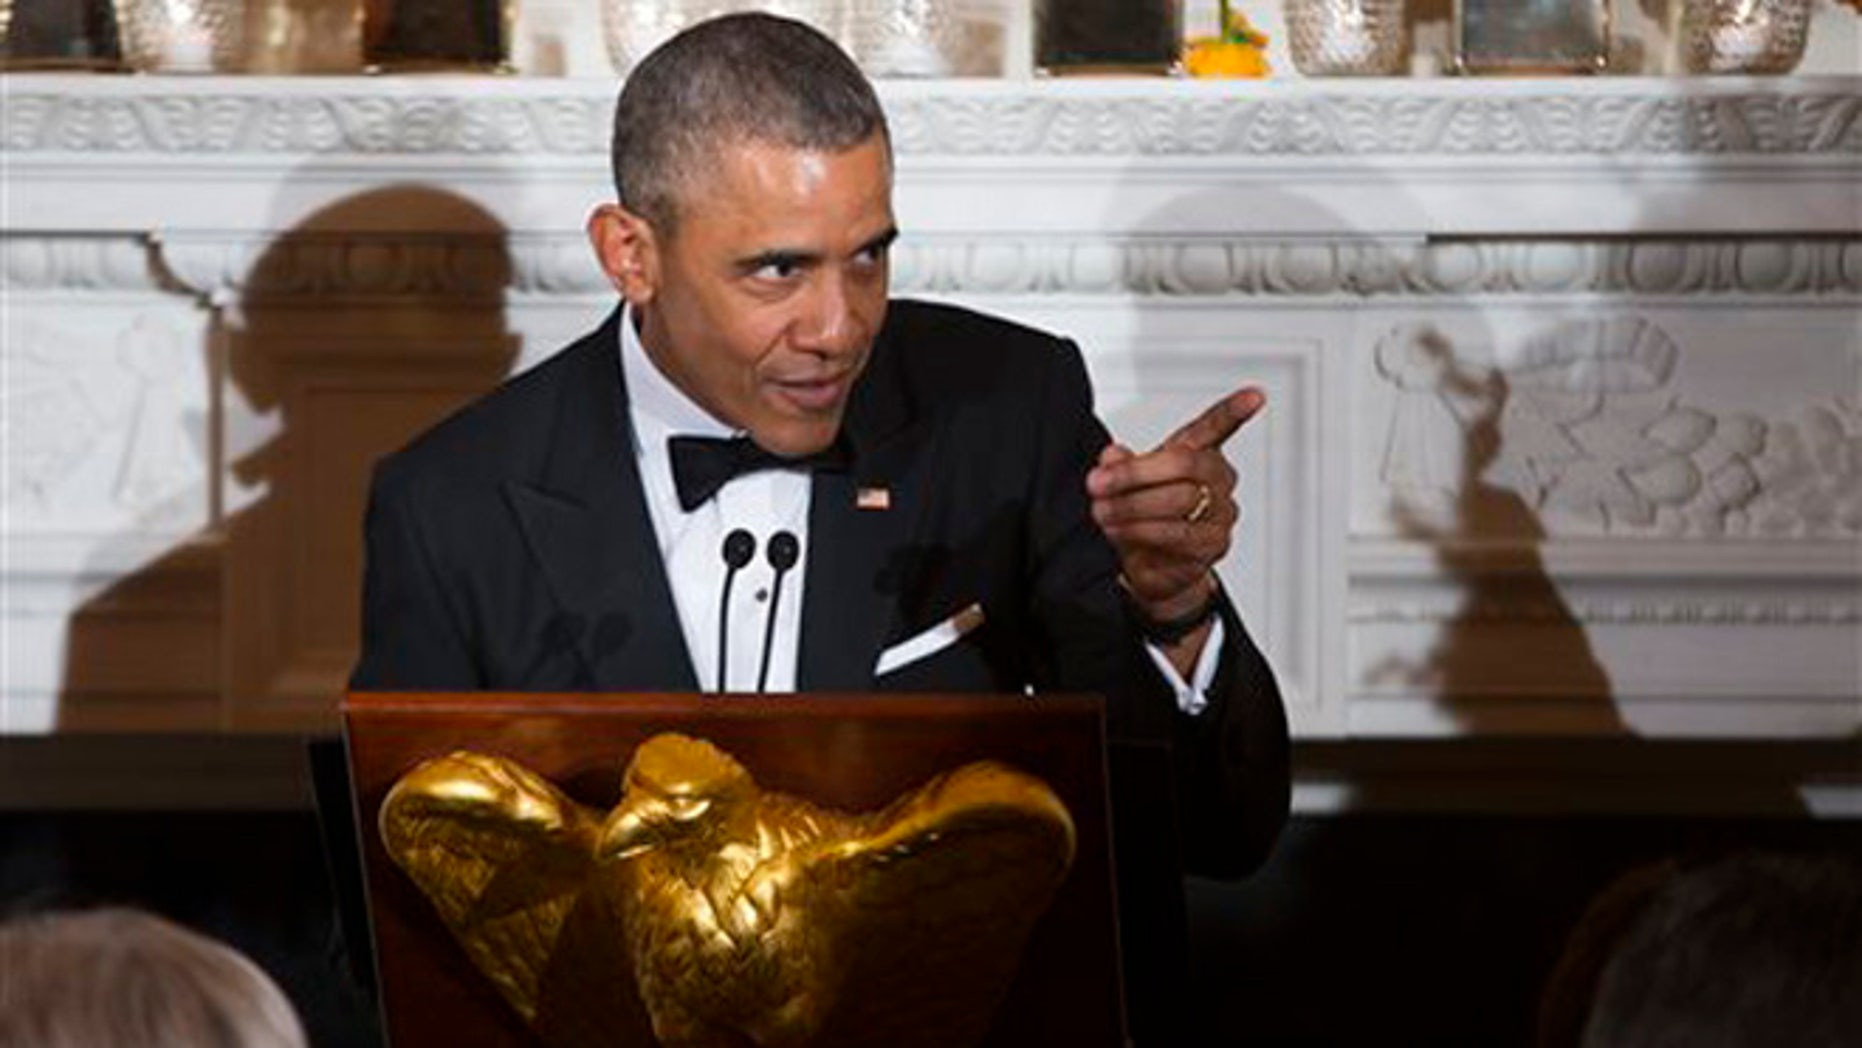 President Barack Obama delivers remarks during a National Governors Association dinner in the State Dining room of the White House, on Sunday, Feb. 21, 2016, in Washington. (AP Photo/Evan Vucci)